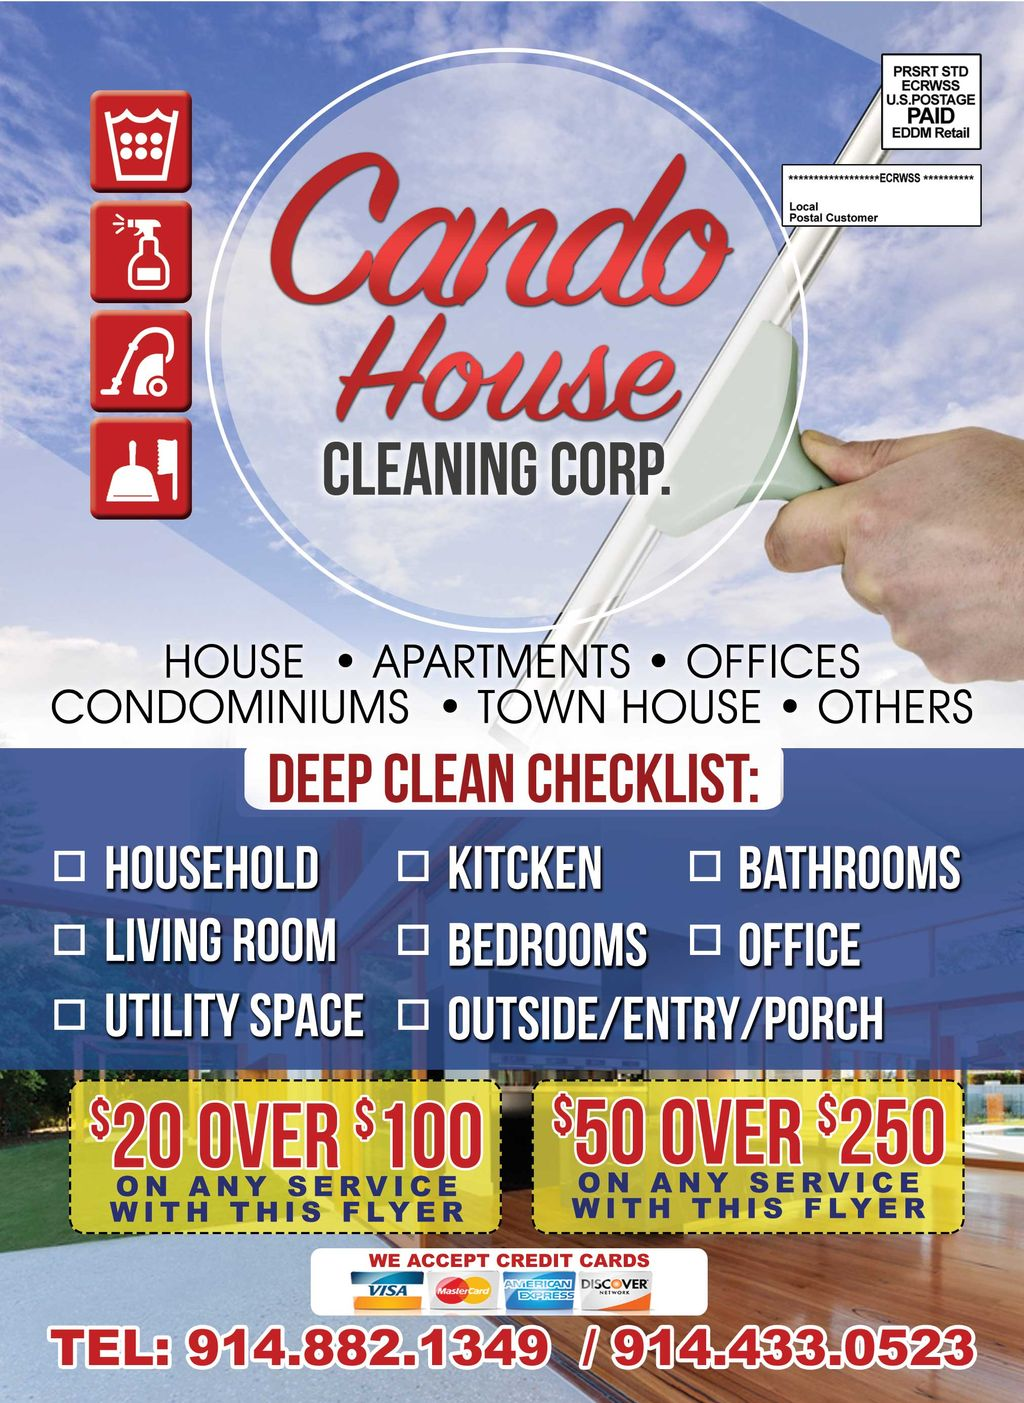 Cando House Cleaning